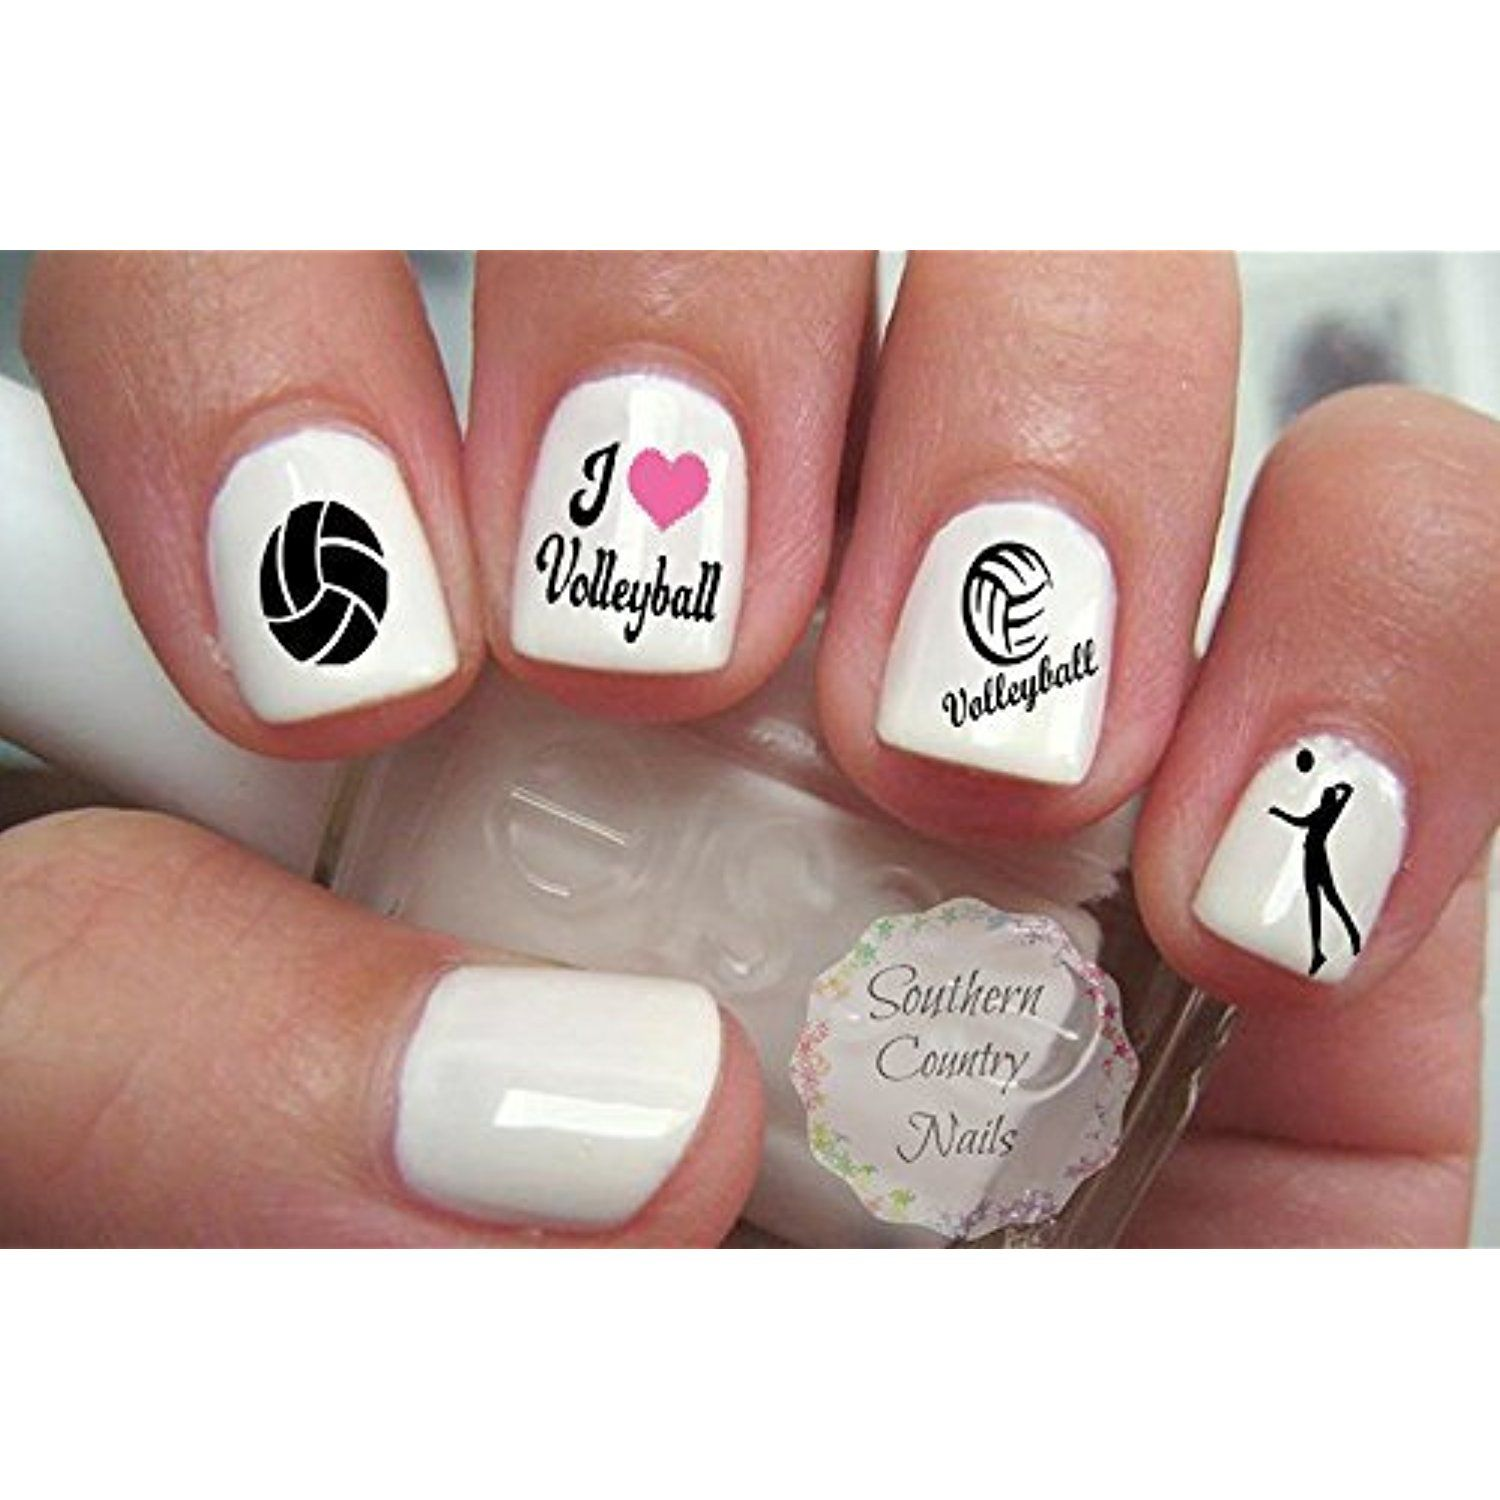 50 Sports Volleyball Nail Art Designs Decals Visit The Image